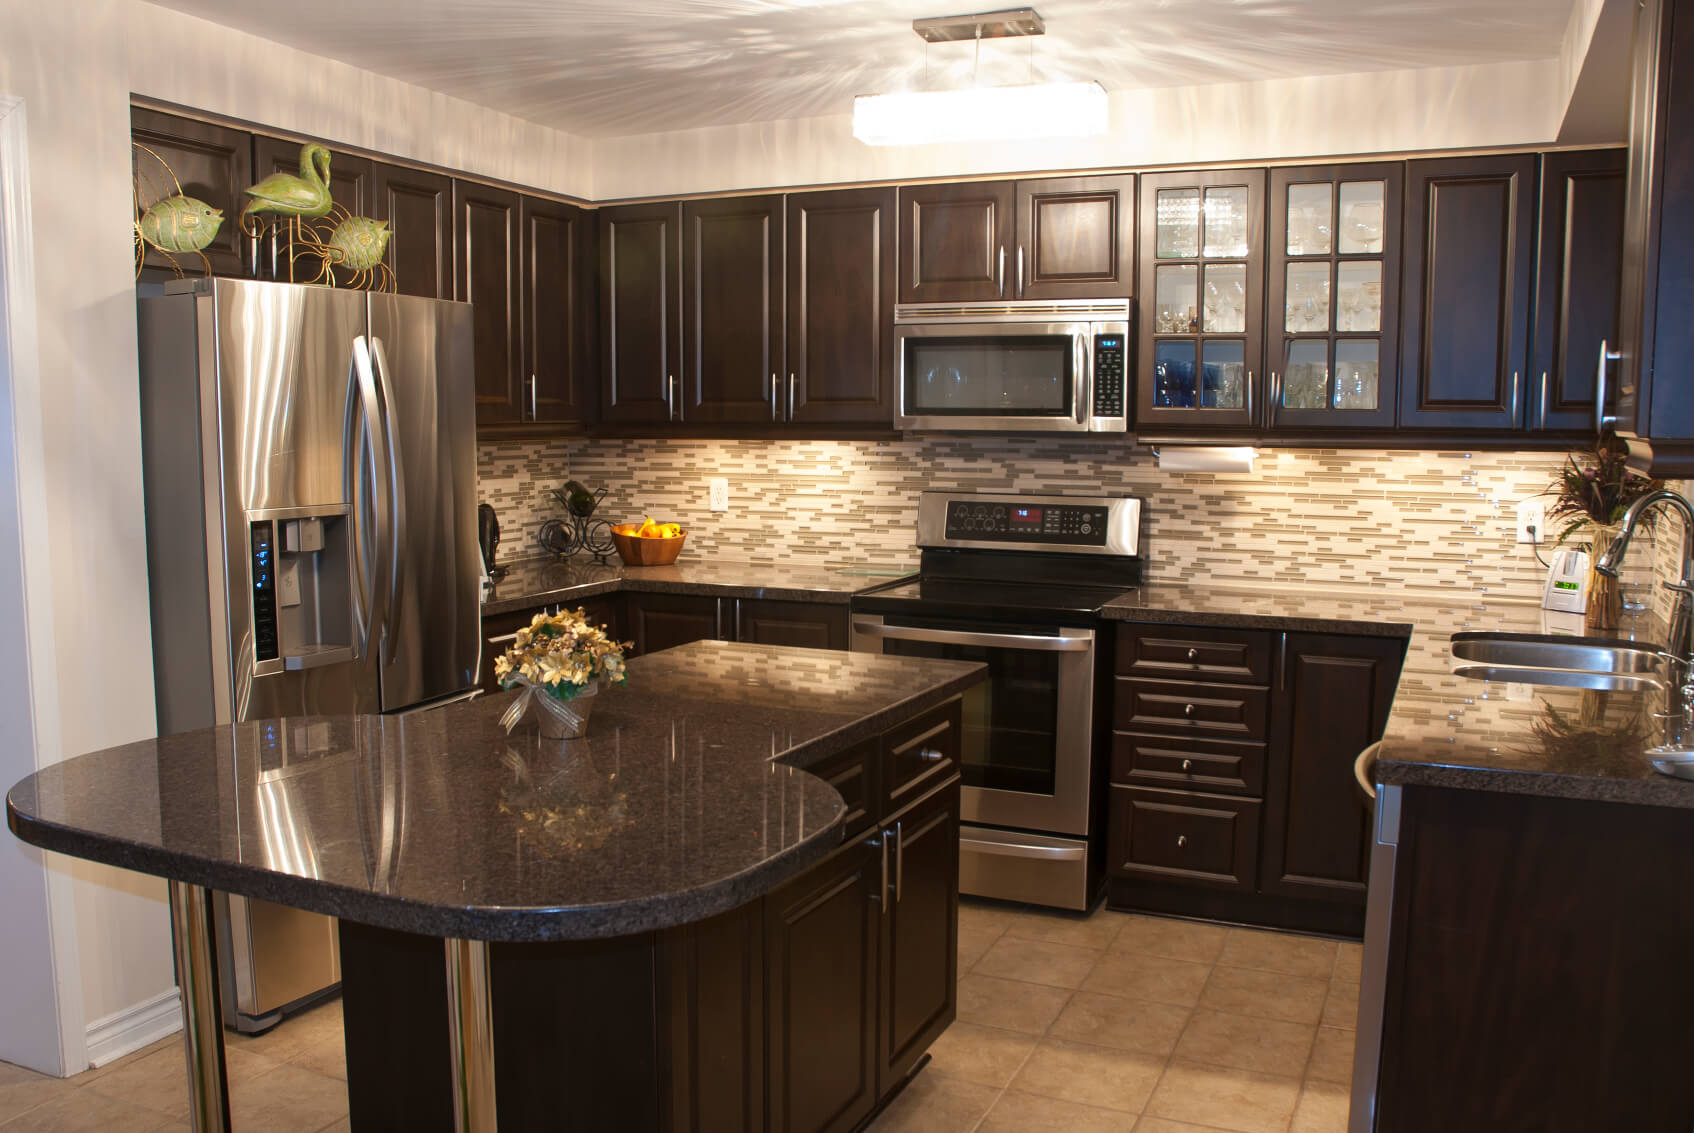 deep black colored kitchen cabinets